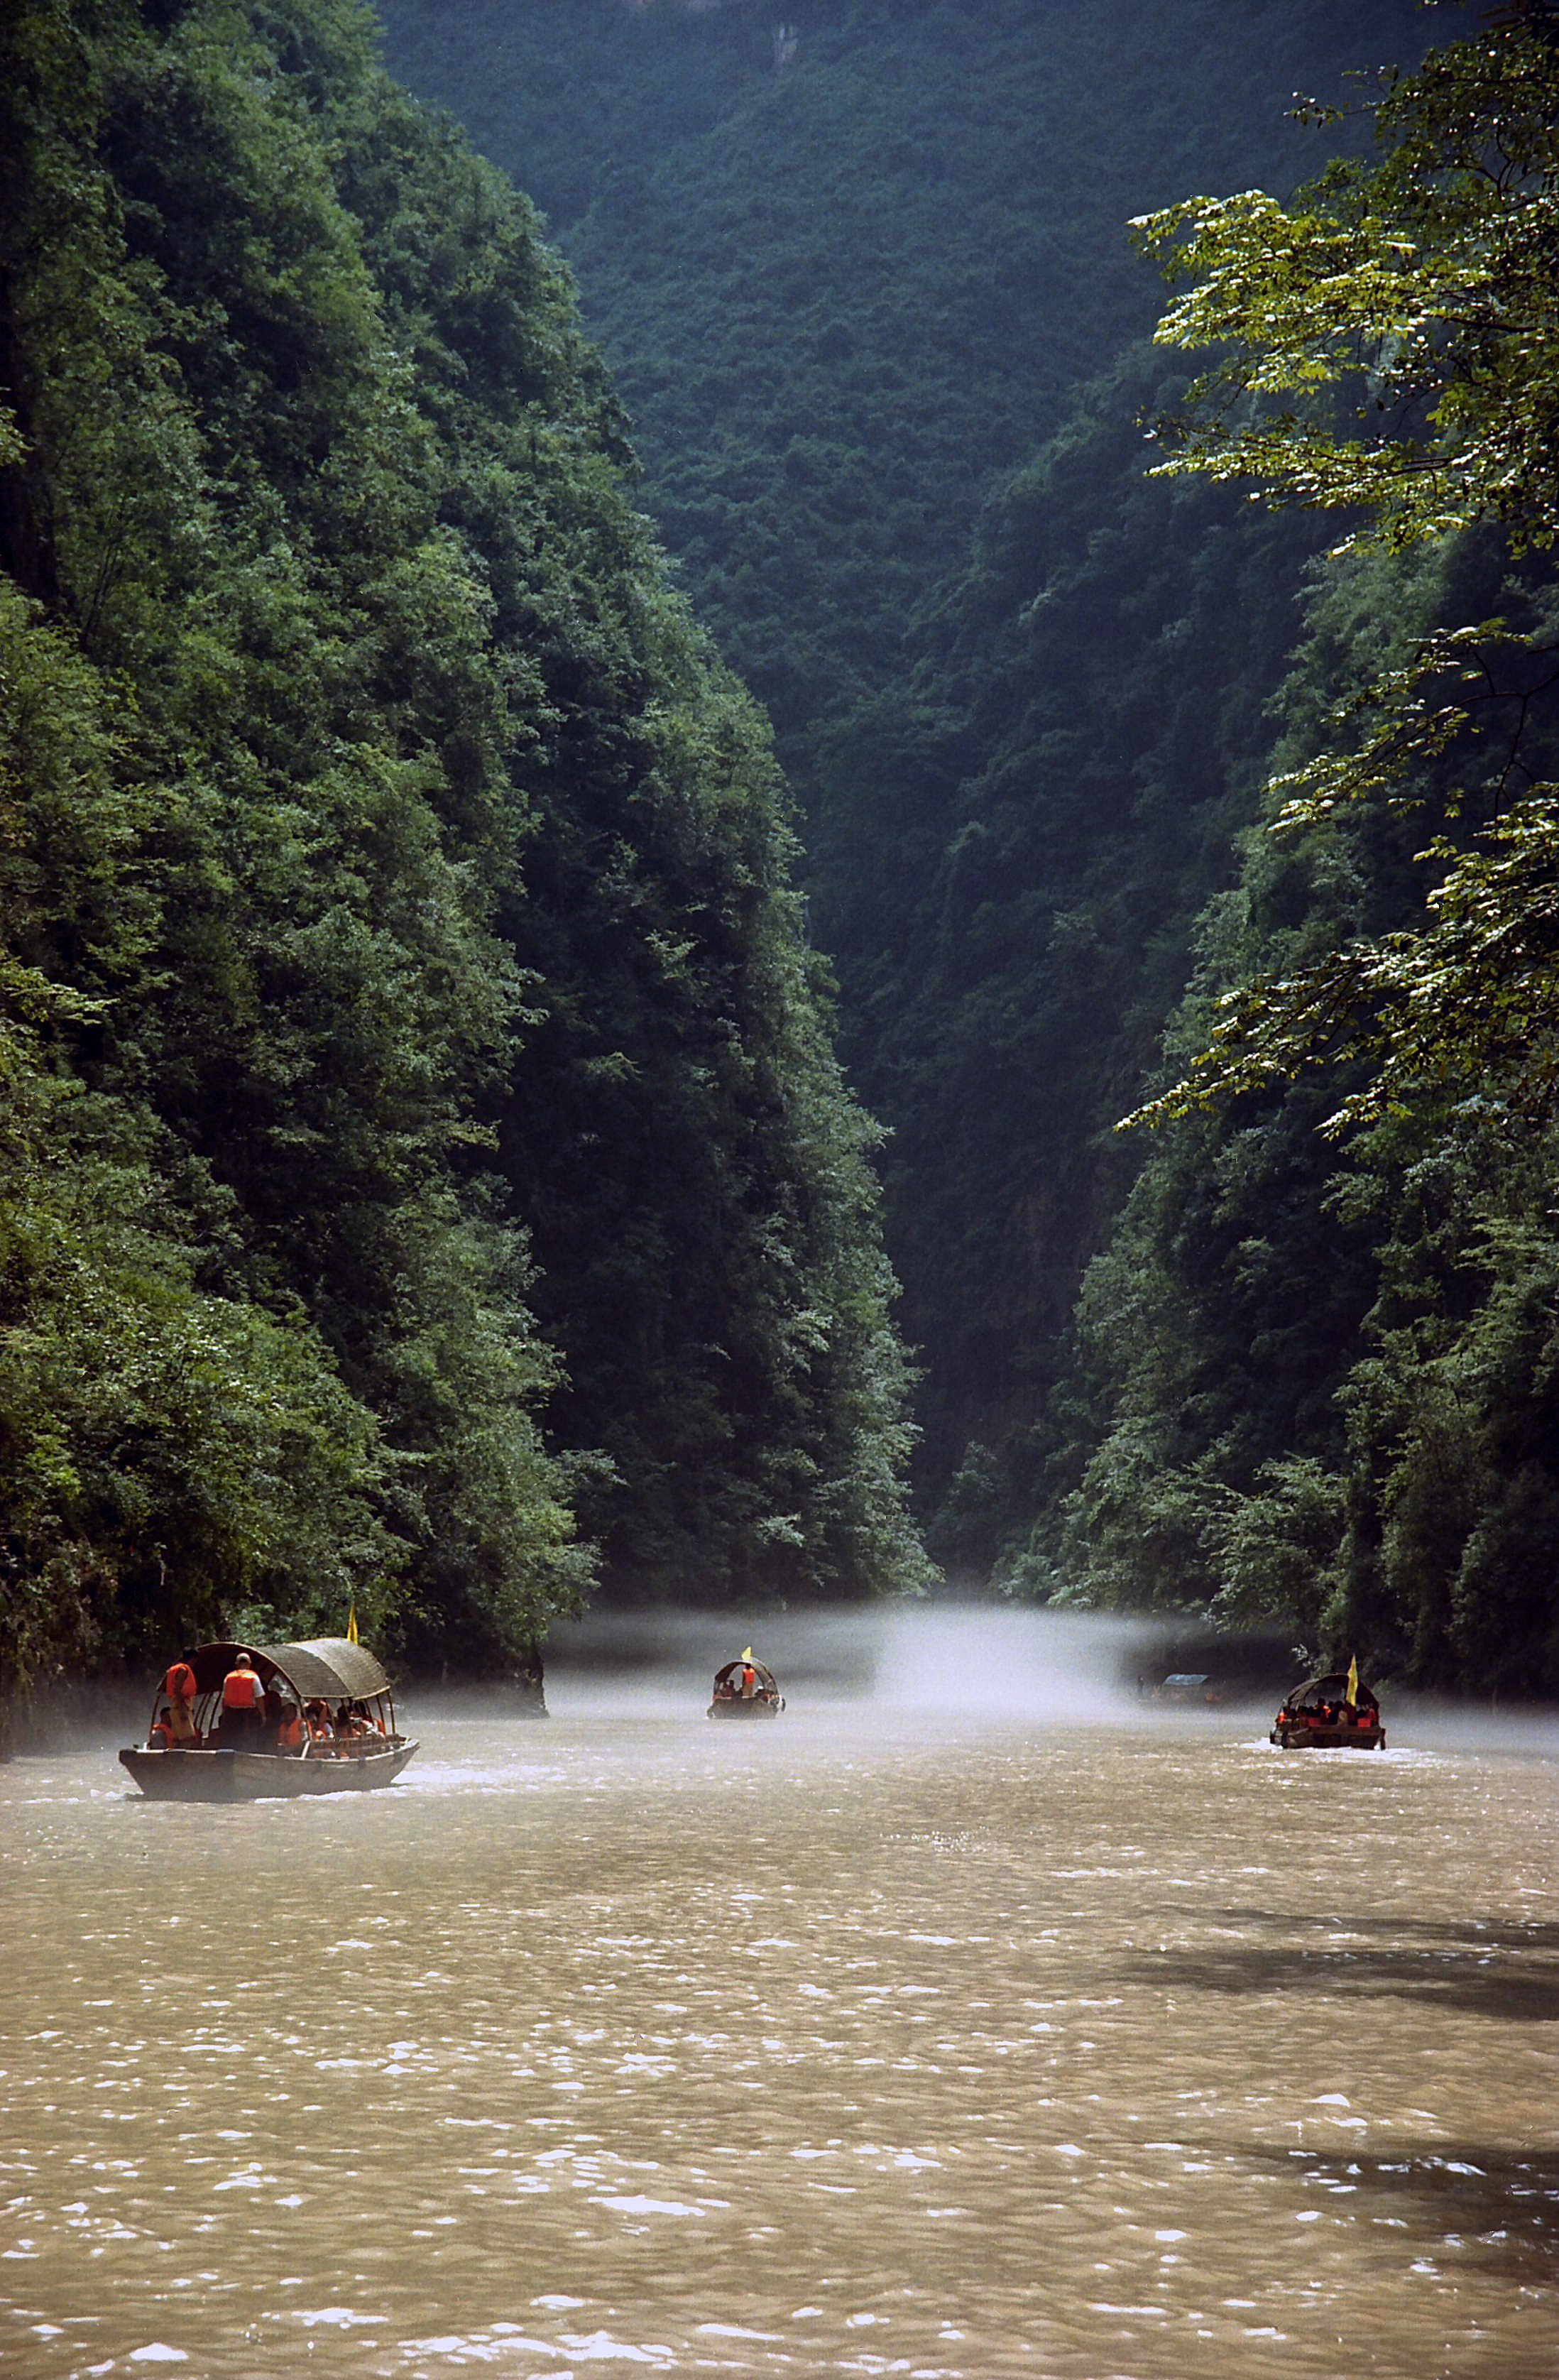 Daning river, Hubei China 2.jpg - Daning river